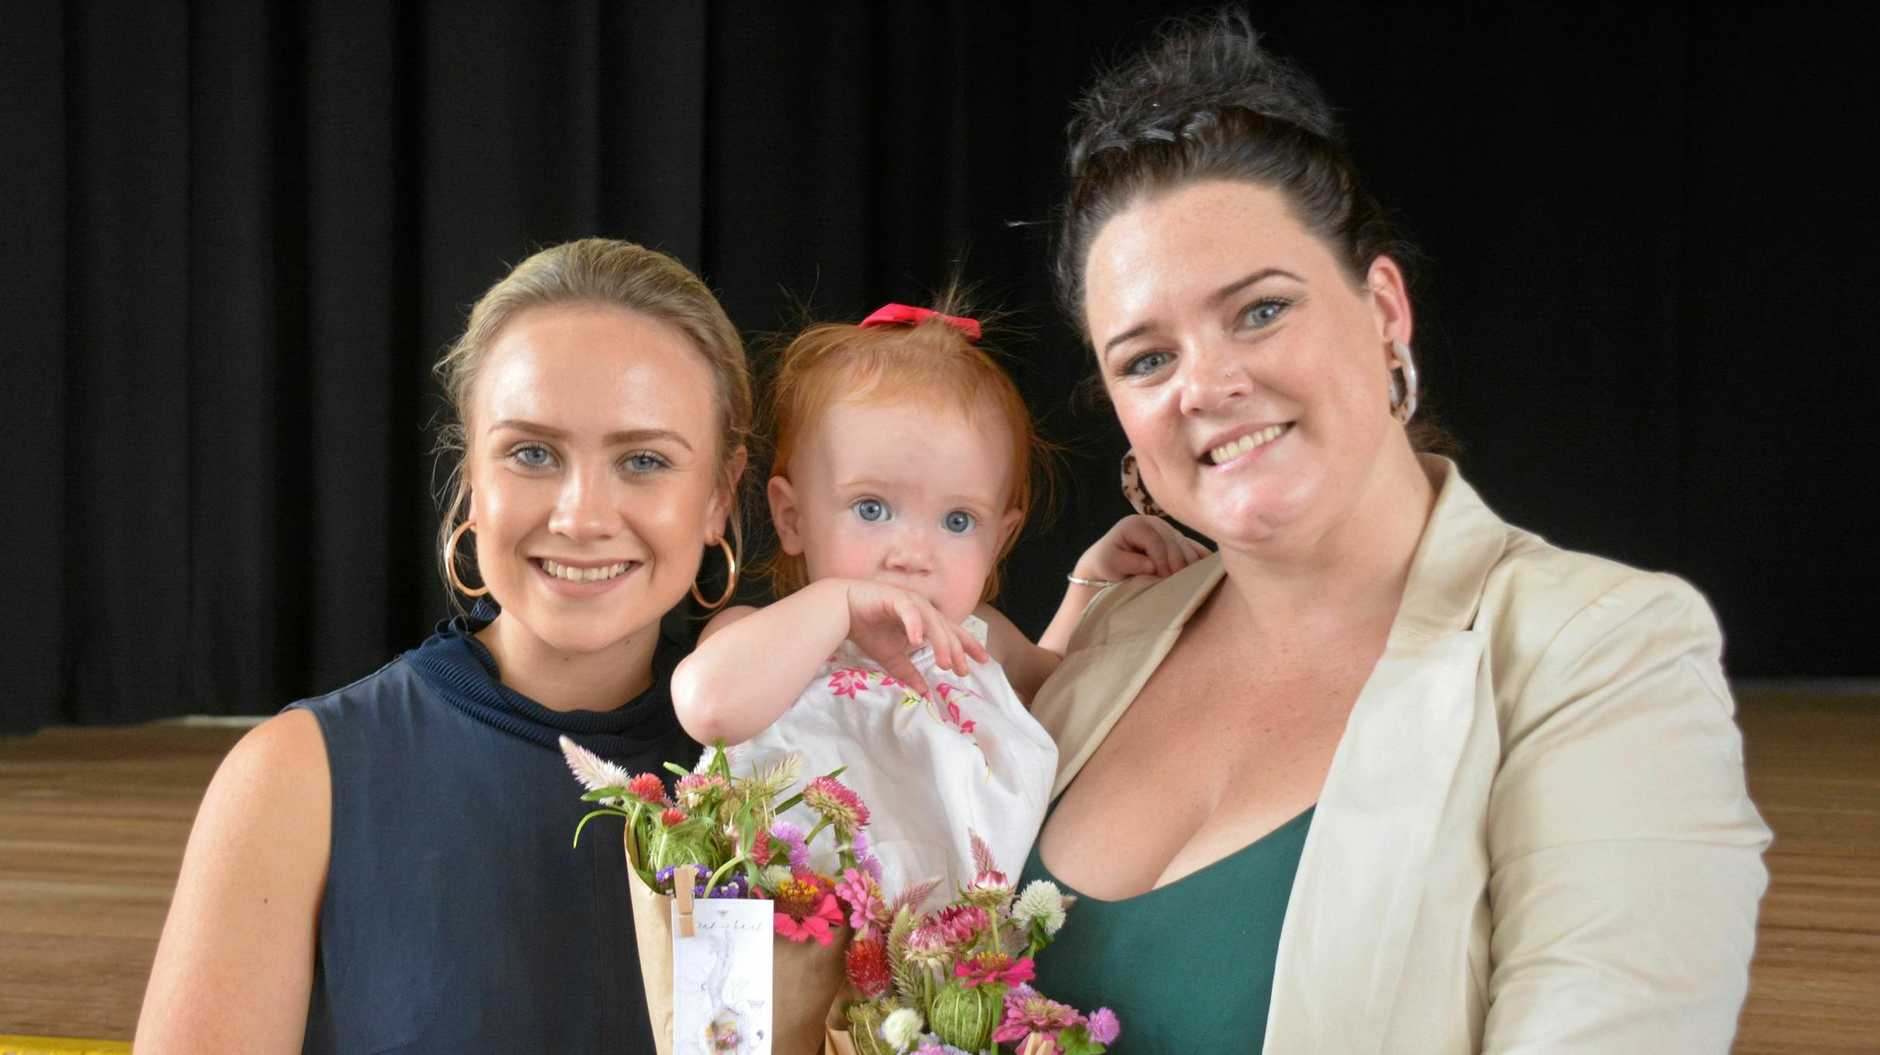 Annie Flamsteed and Chloe Watson were guest speakers at the International Women's Day Luncheon in Kingaroy. Chloe's daughter Rosie also made an on-stage appearance.